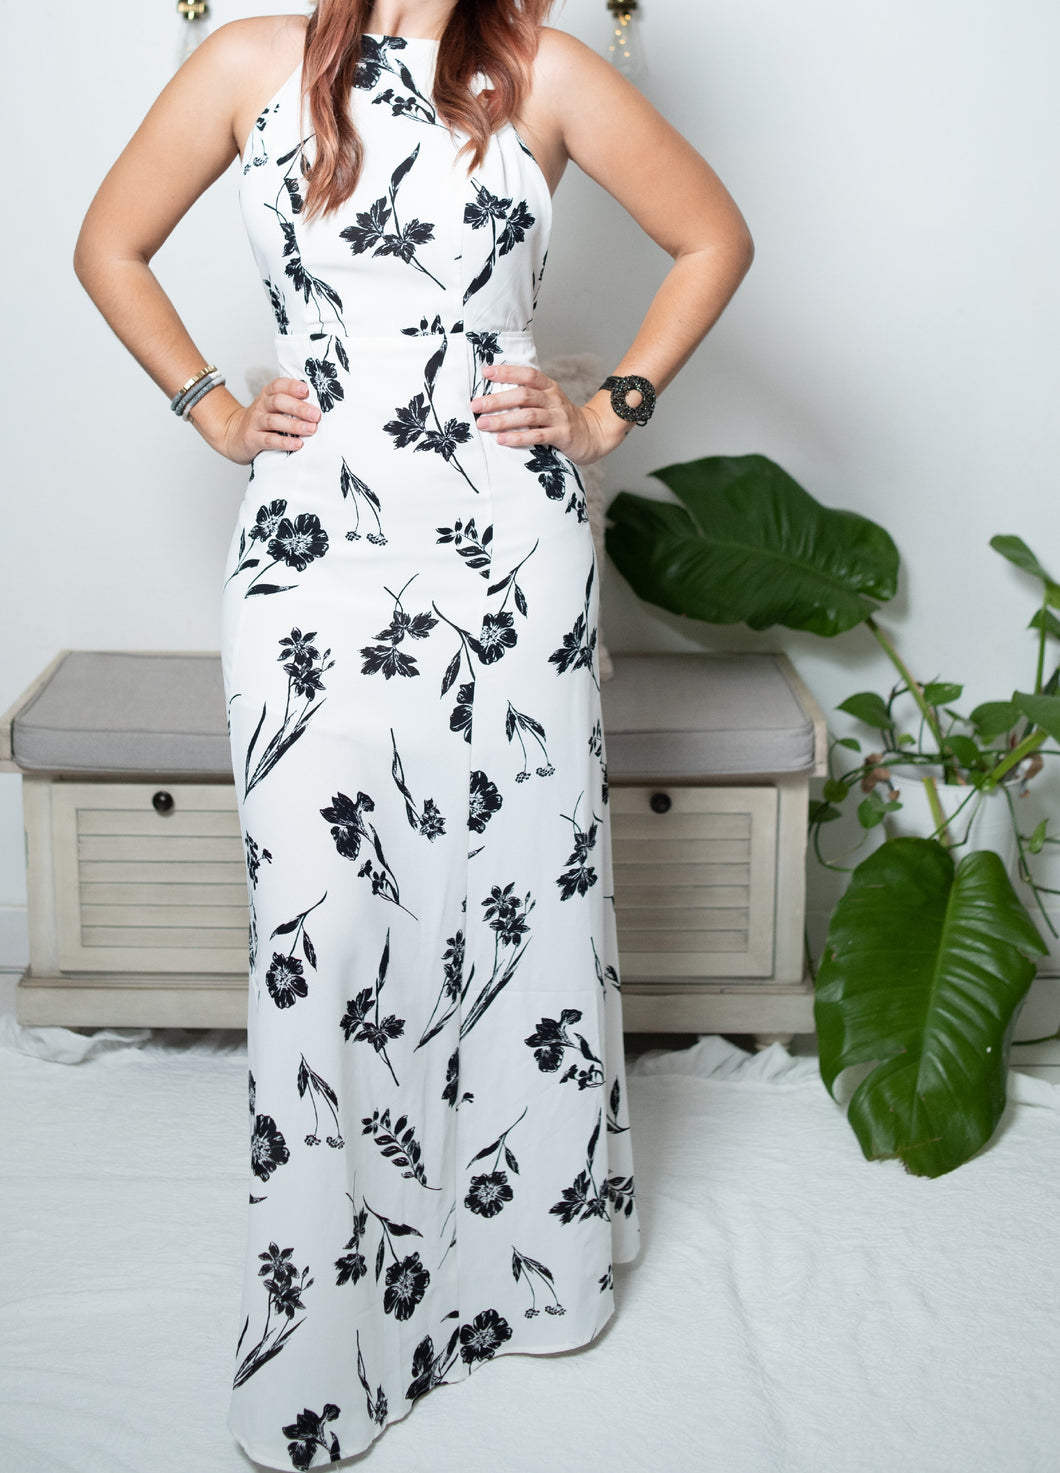 White Maxi Dress with Printed Black Flowers